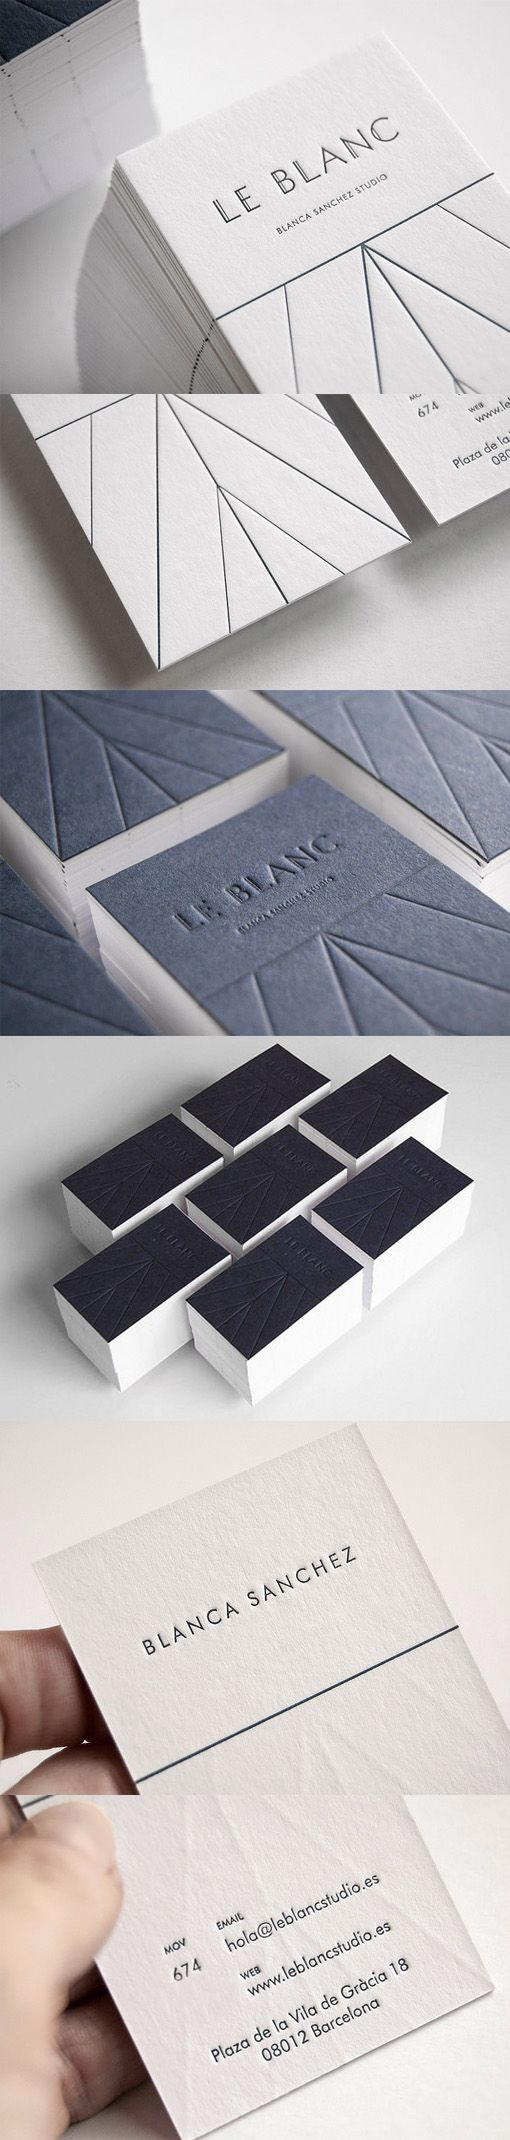 Stylish Textured Letterpress Business Card Design